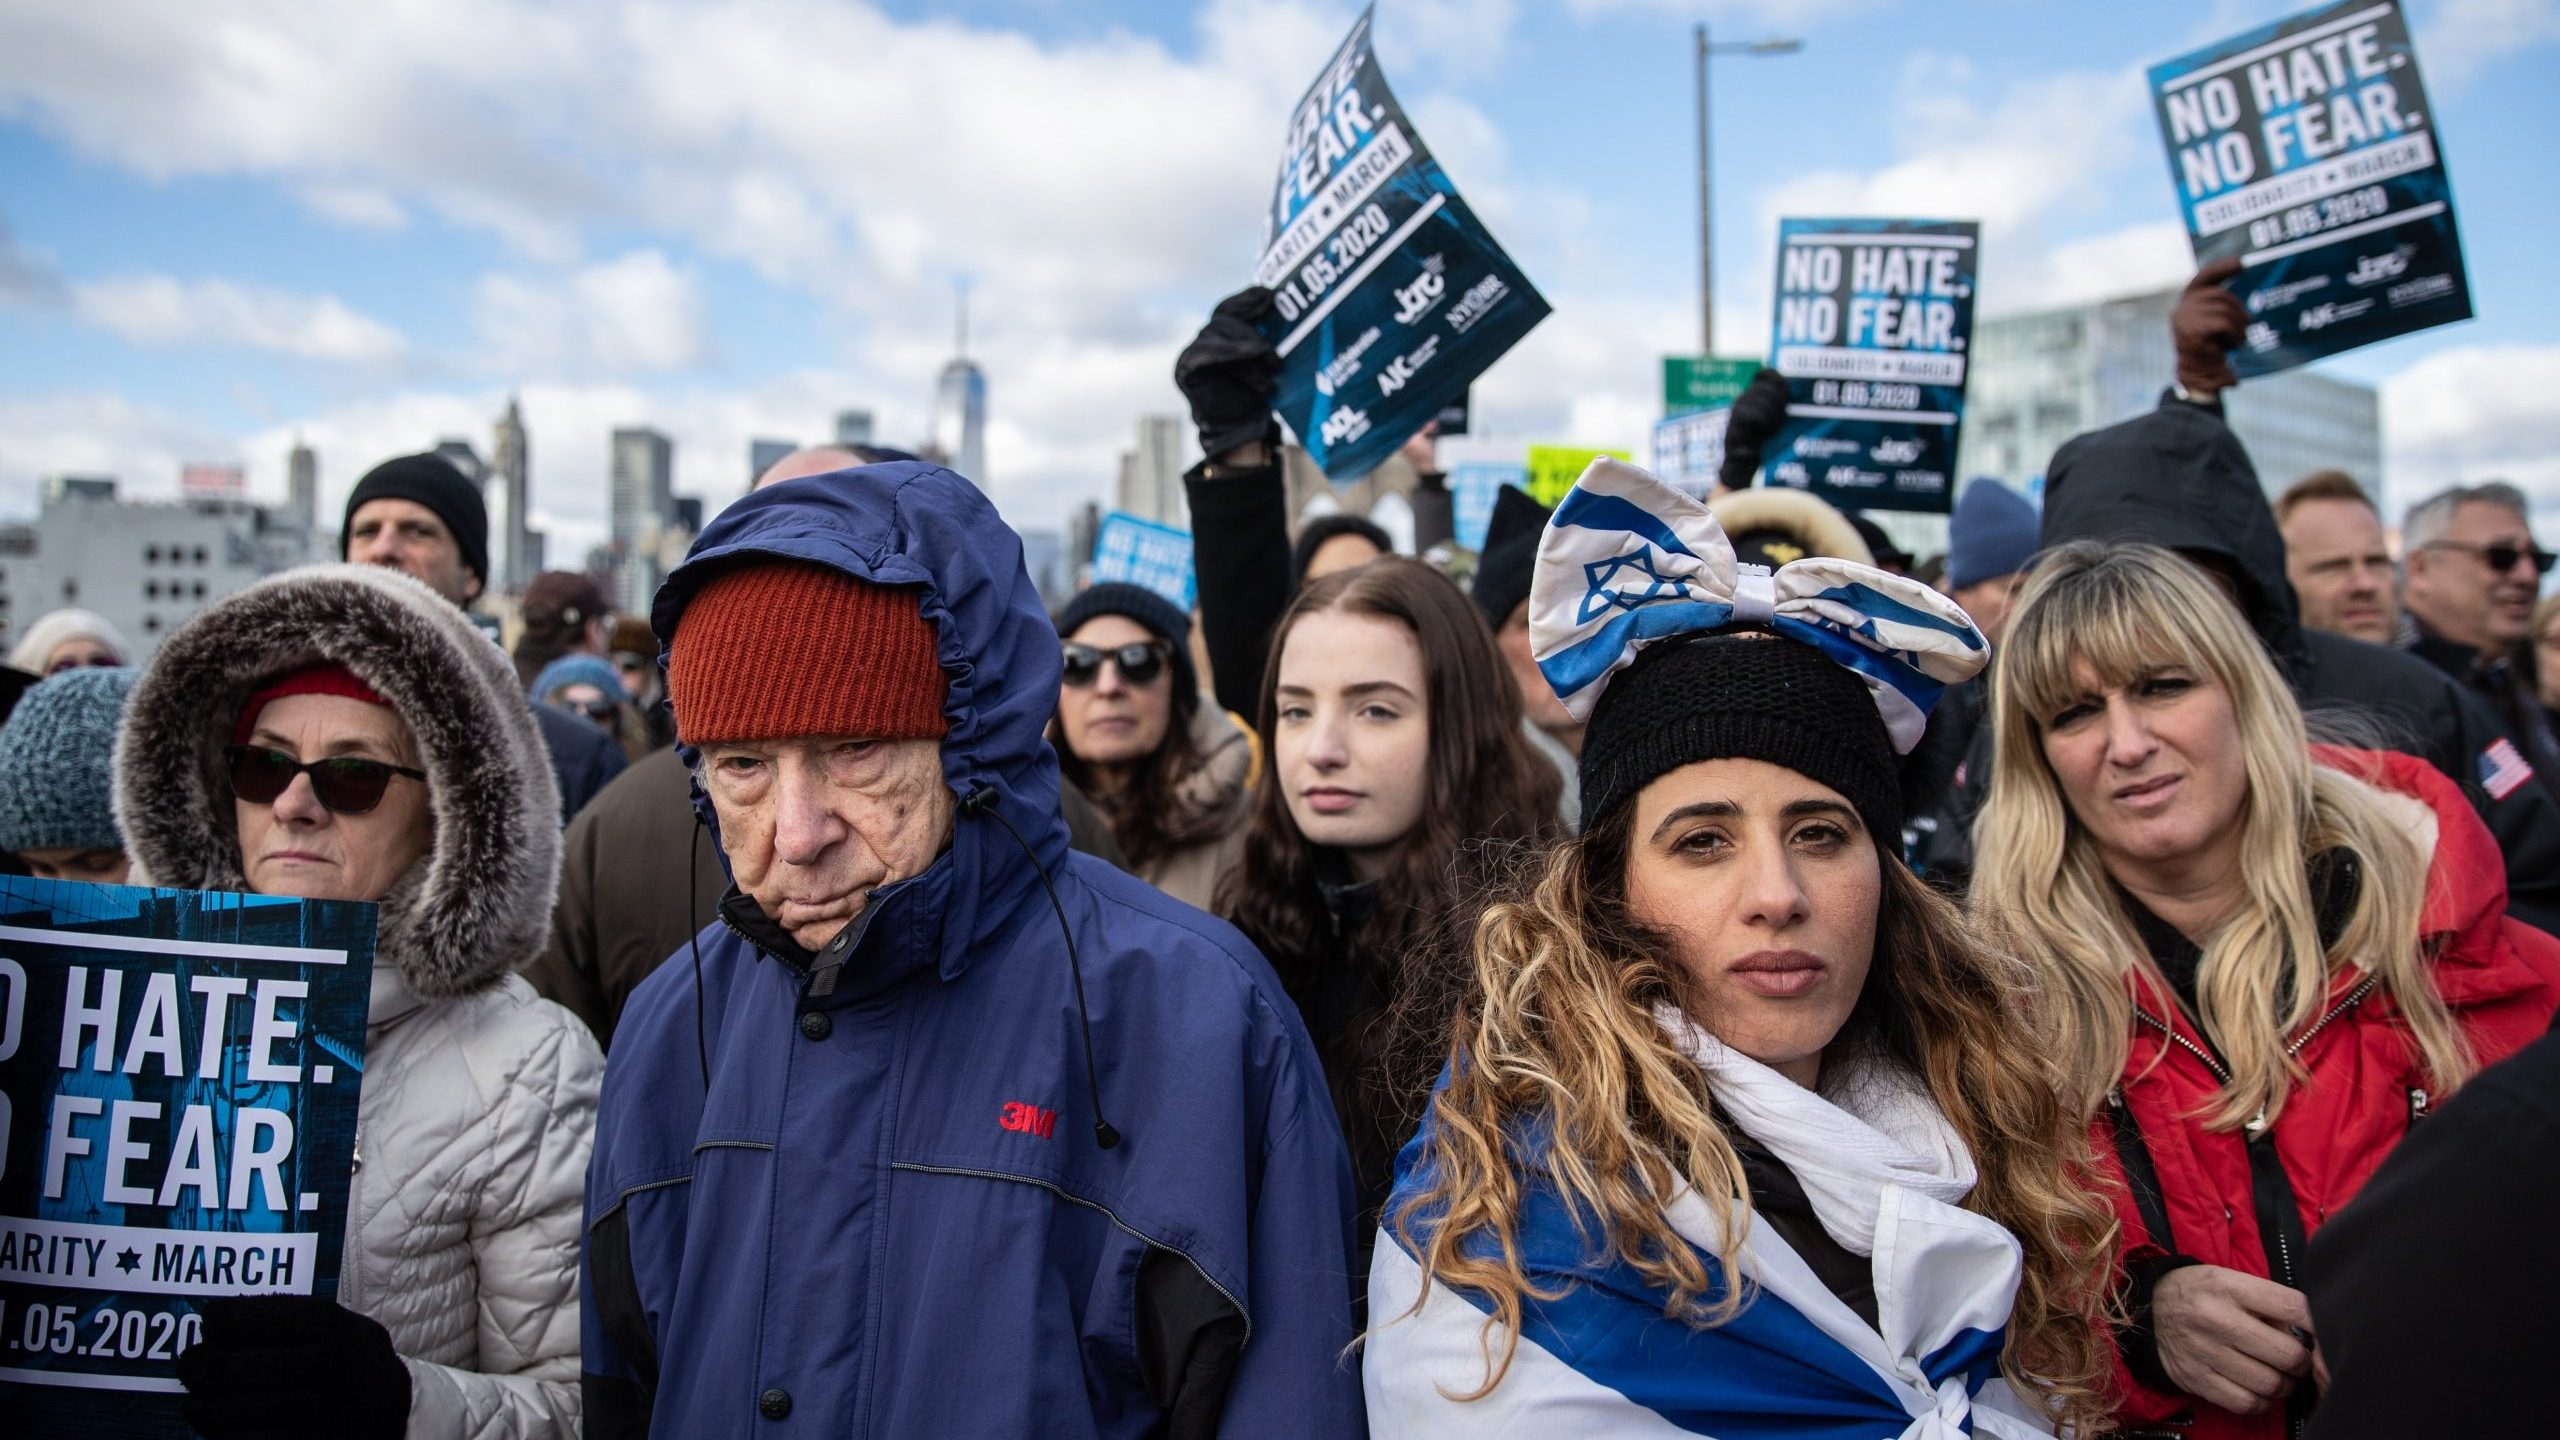 People participate in a Jewish solidarity march across the Brooklyn Bridge in New York City on Jan. 5, 2020. (Credit: Jeenah Moon / Getty Images)